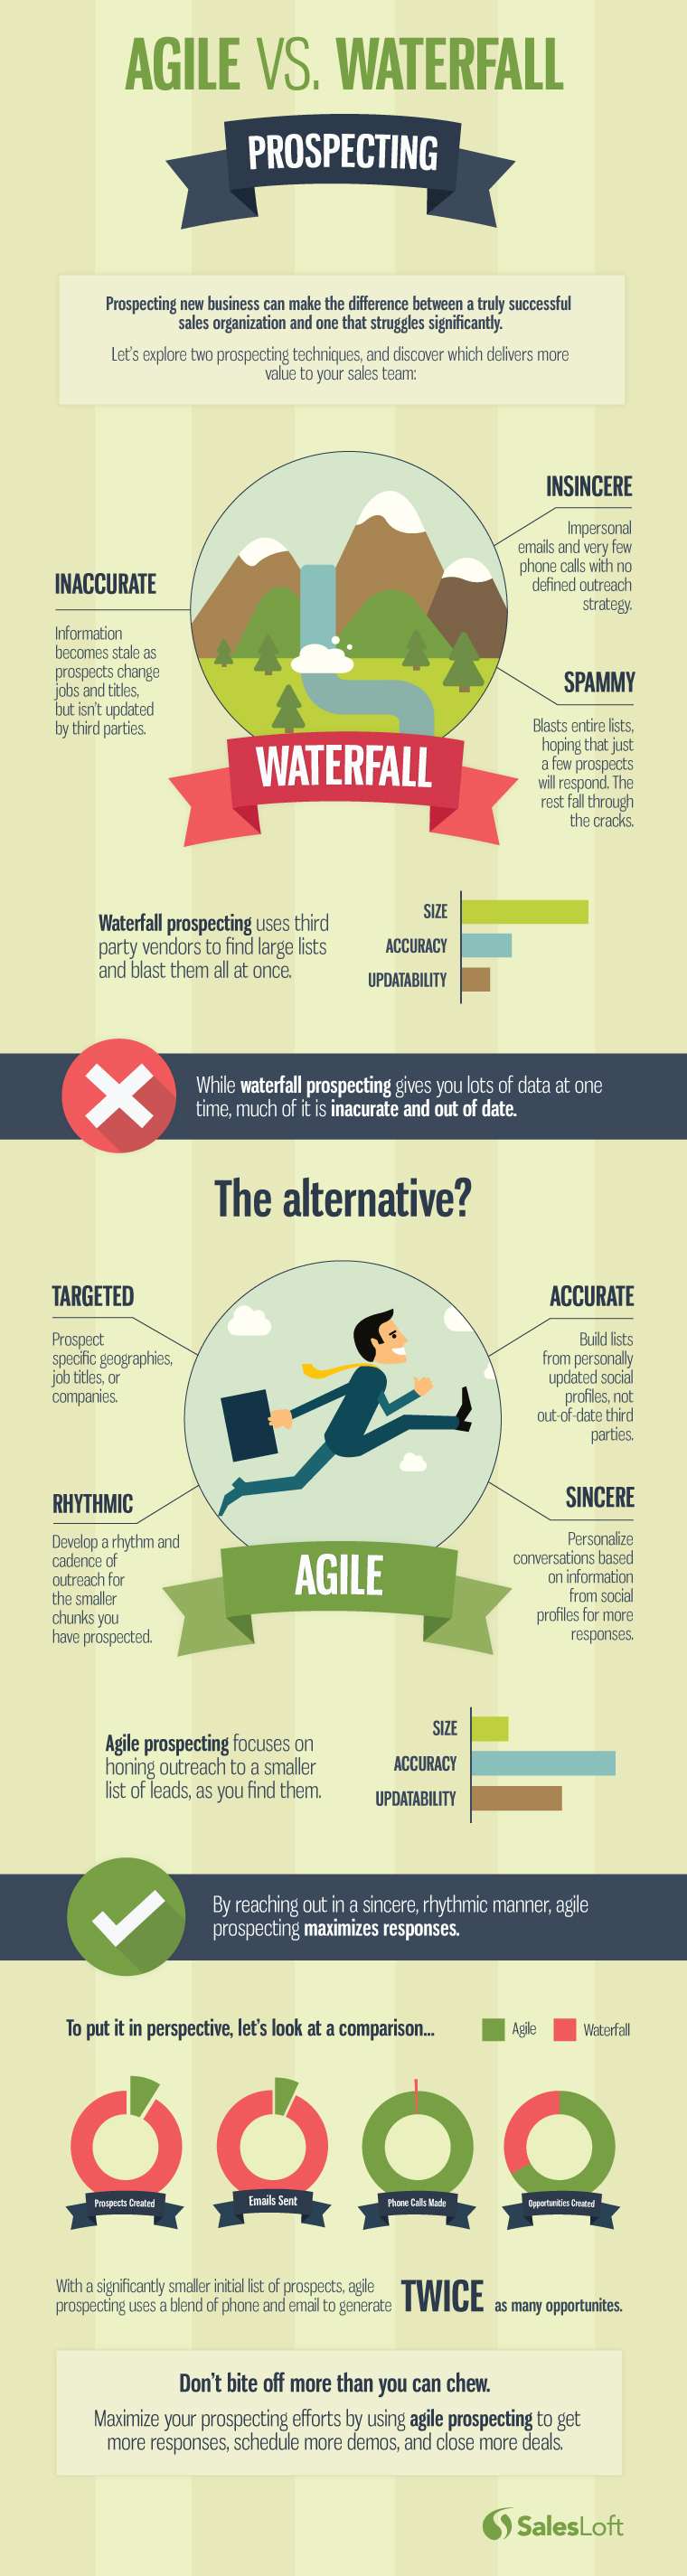 The Prospecting Method That Your Team Should Avoid [Infographic]